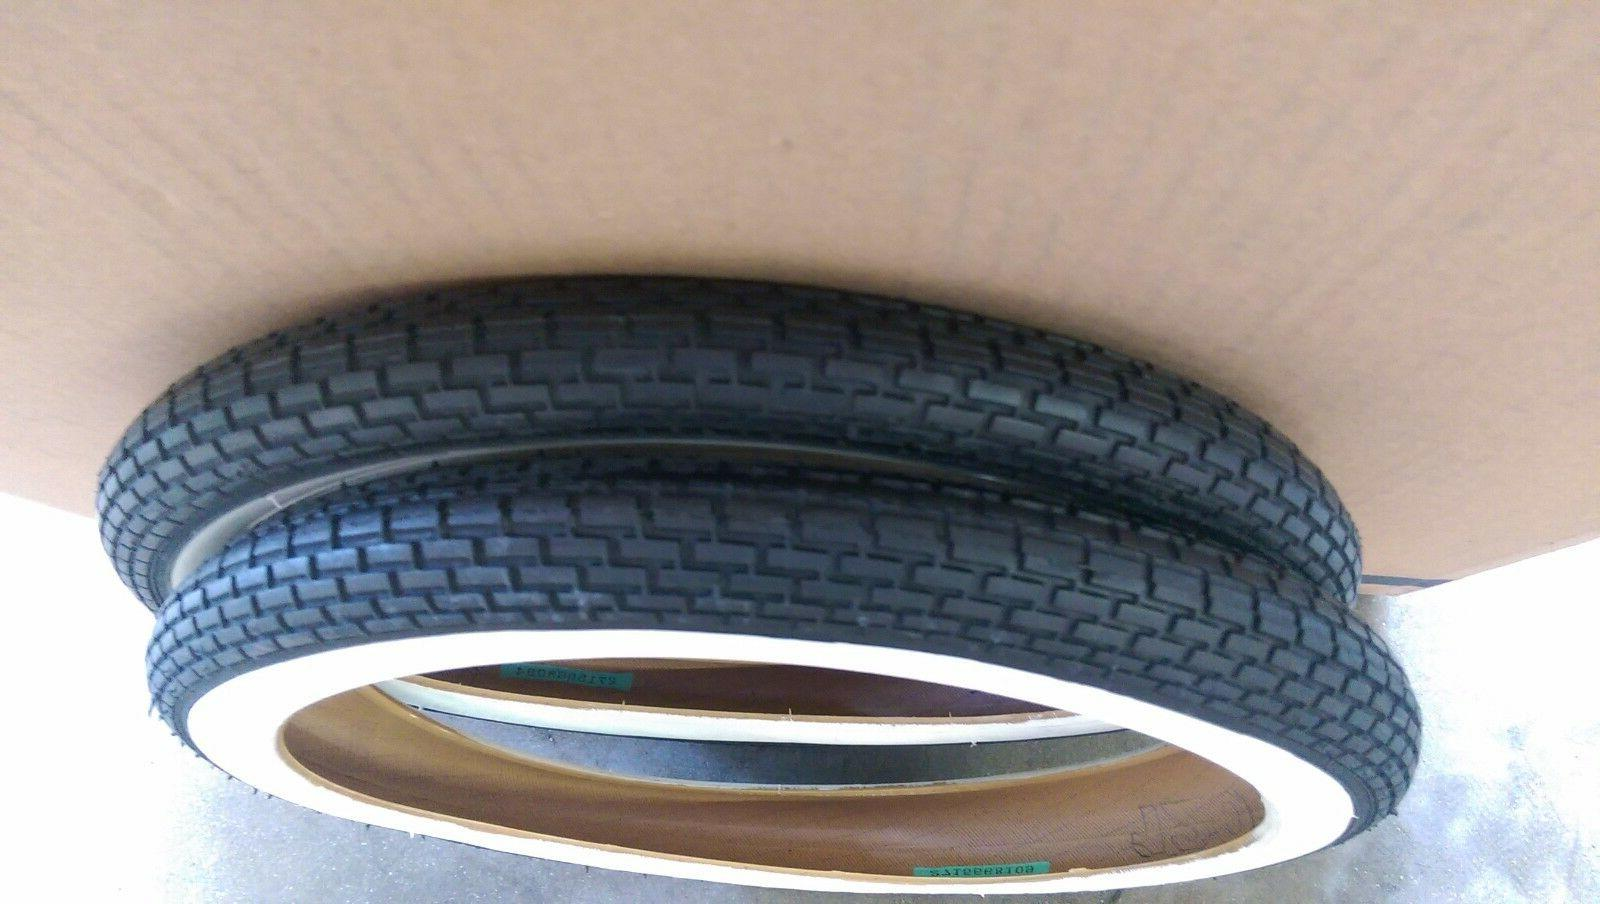 "2pack Tires+tubes 16"" 1.75 WhiteWall Tires Brick Thread"